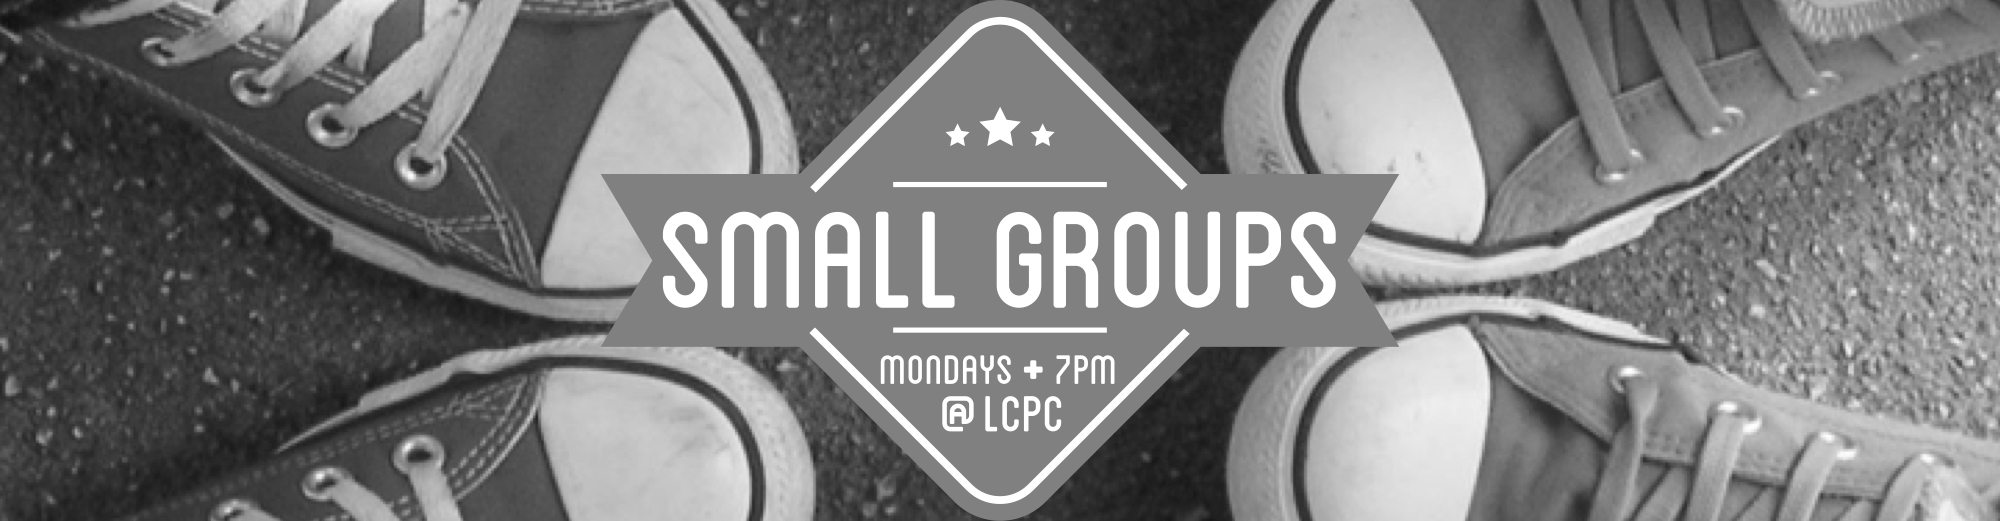 Small Groups Website Banner